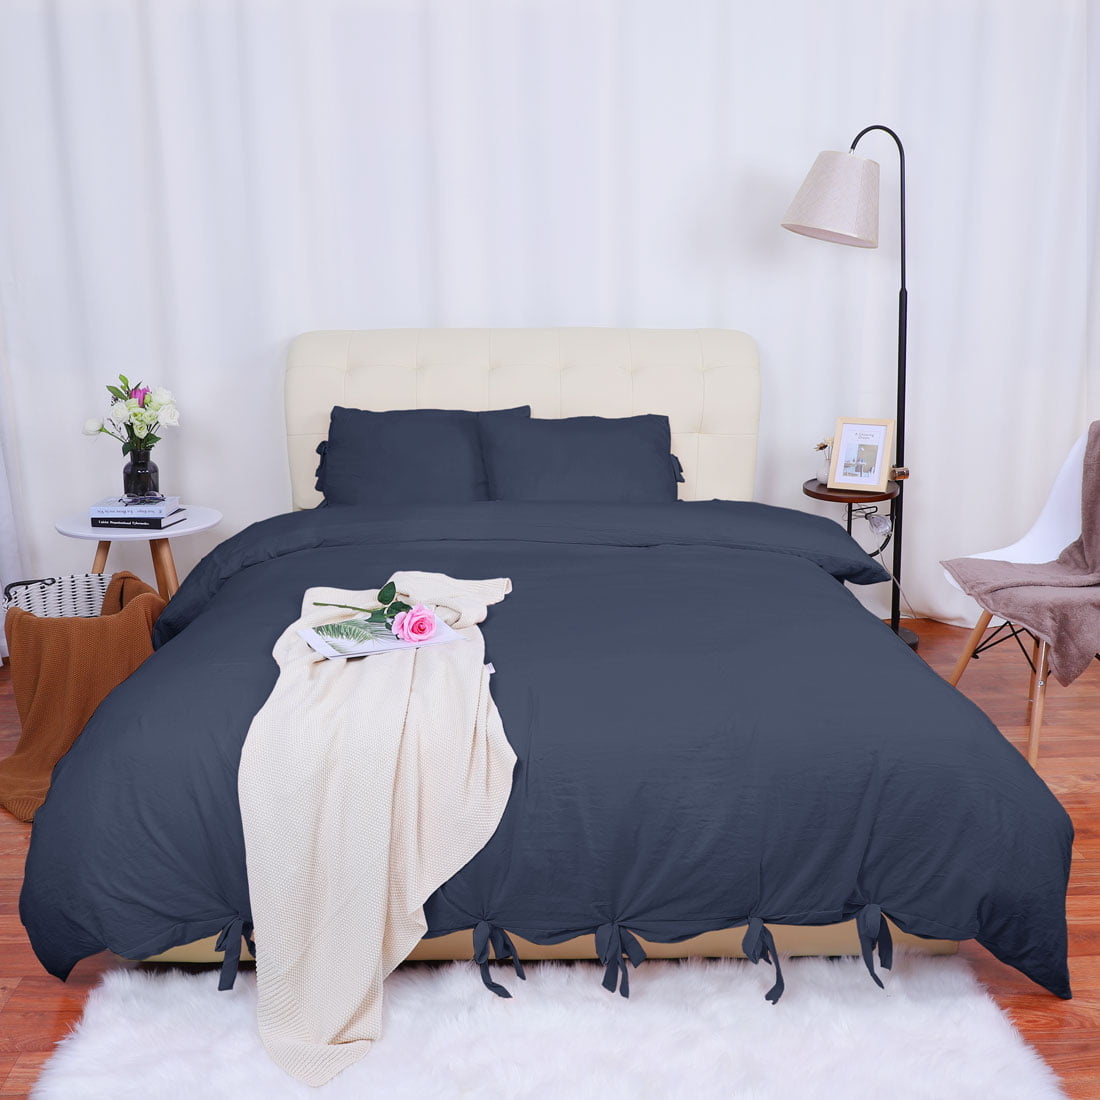 Washed Cotton Bedding Comforter Duvet Cover Pillowcase Set Navy Blue Queen Walmart Com Walmart Com